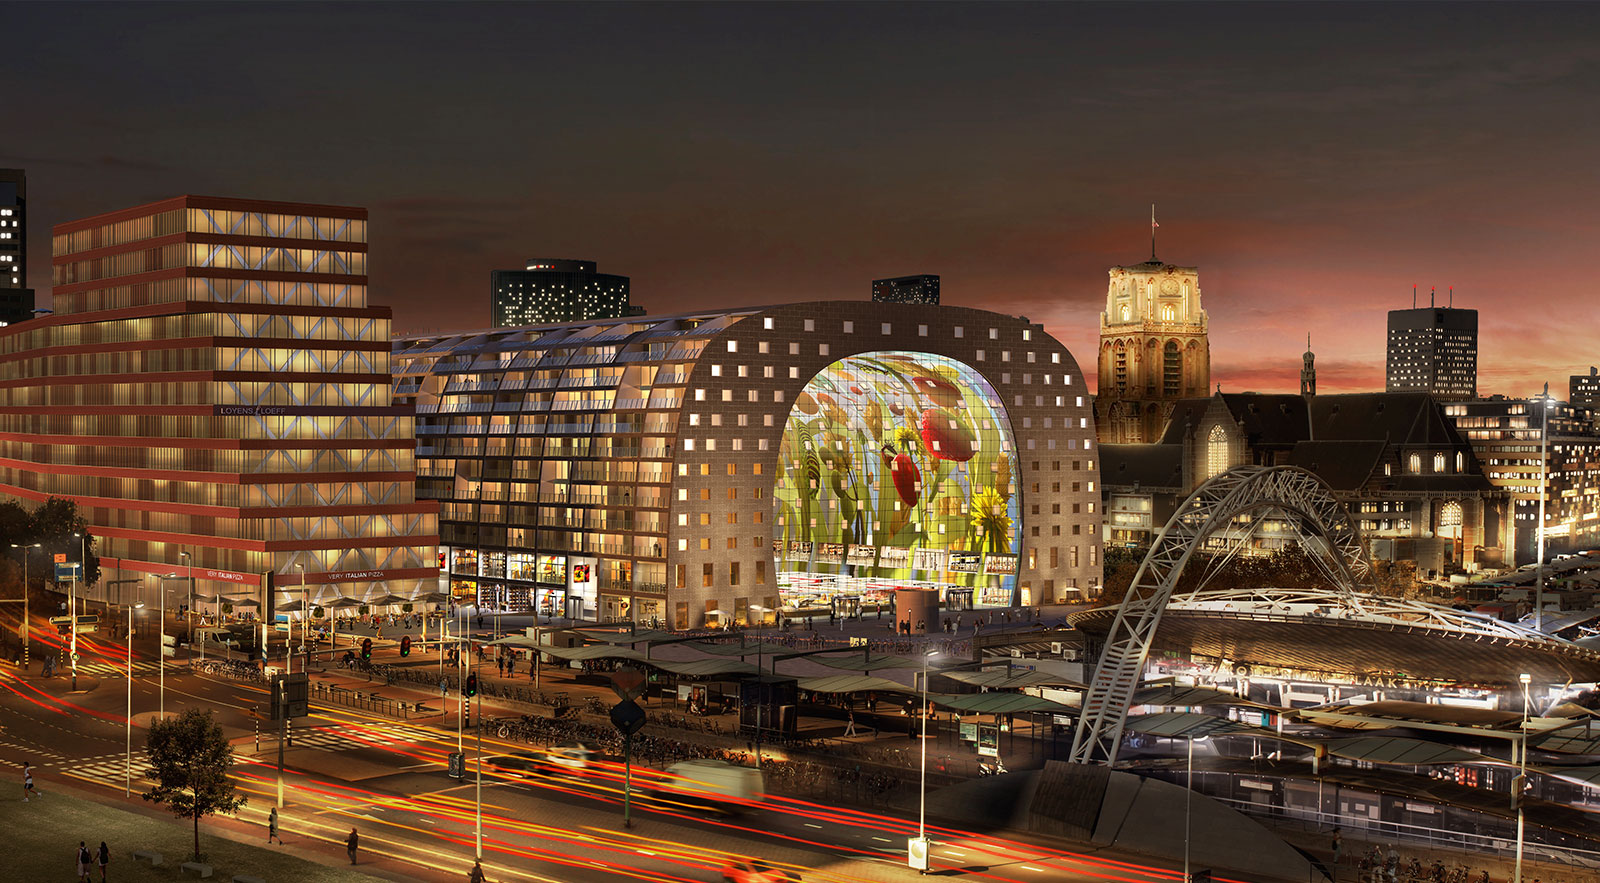 Markthal-Rotterdam-At-Night